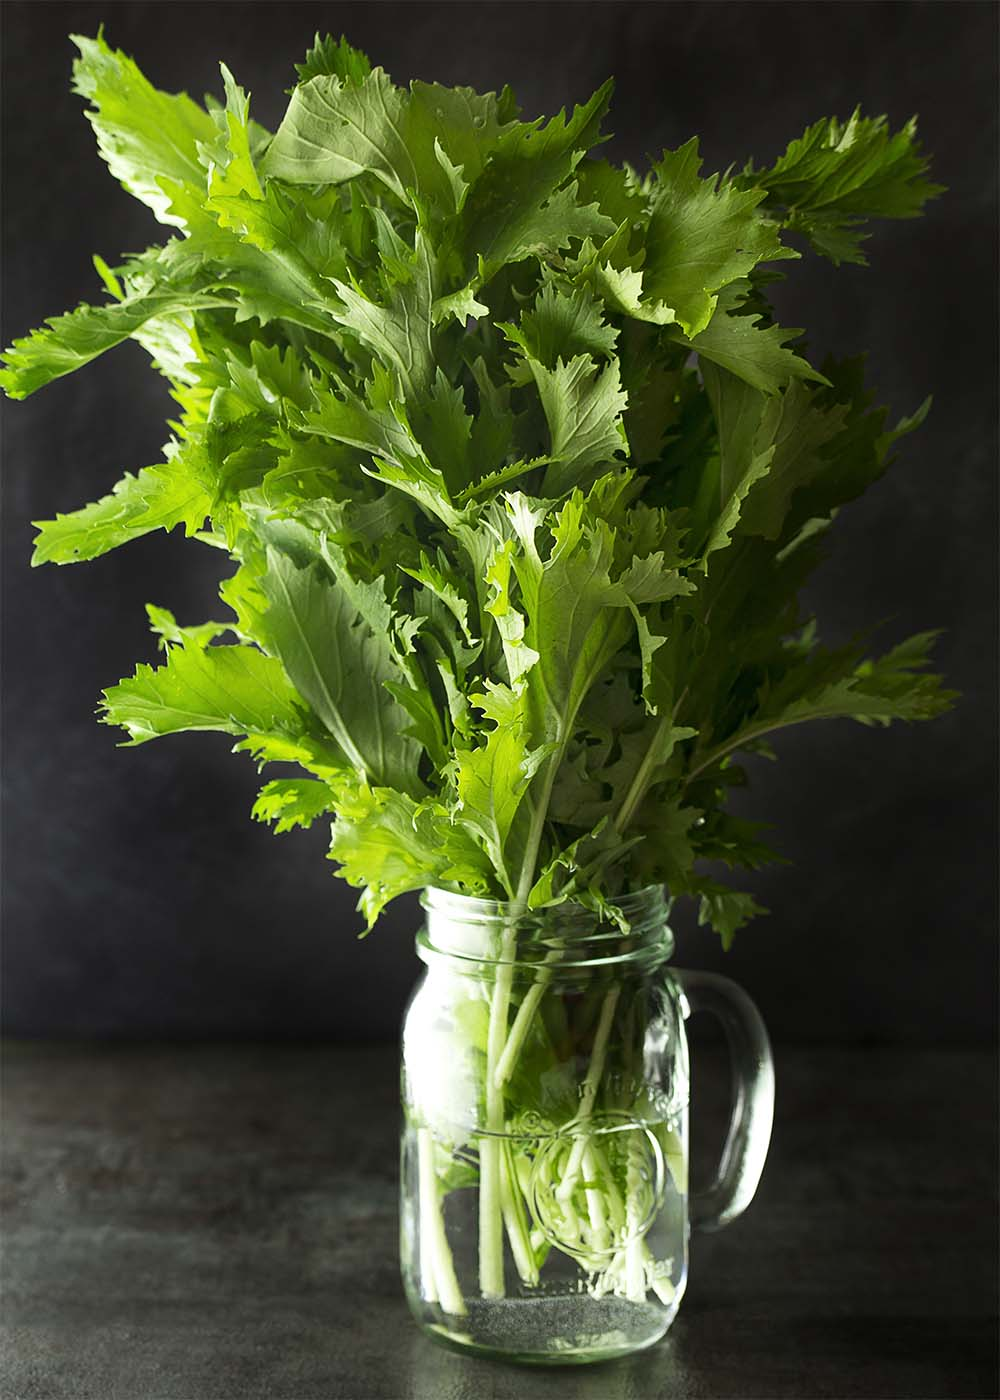 Mizuna greens upright in a container of water showing the feathery leaves.